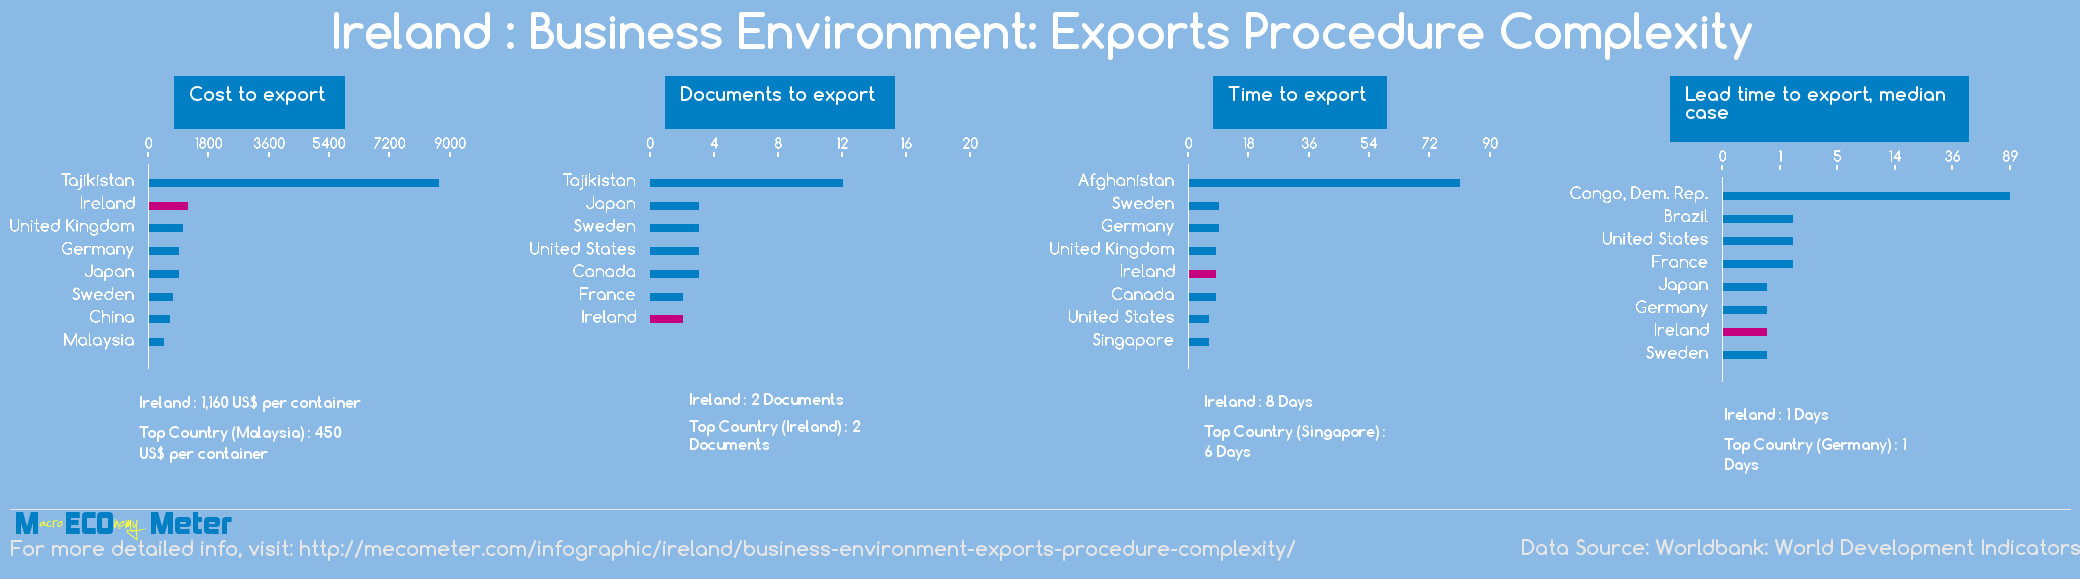 Ireland : Business Environment: Exports Procedure Complexity